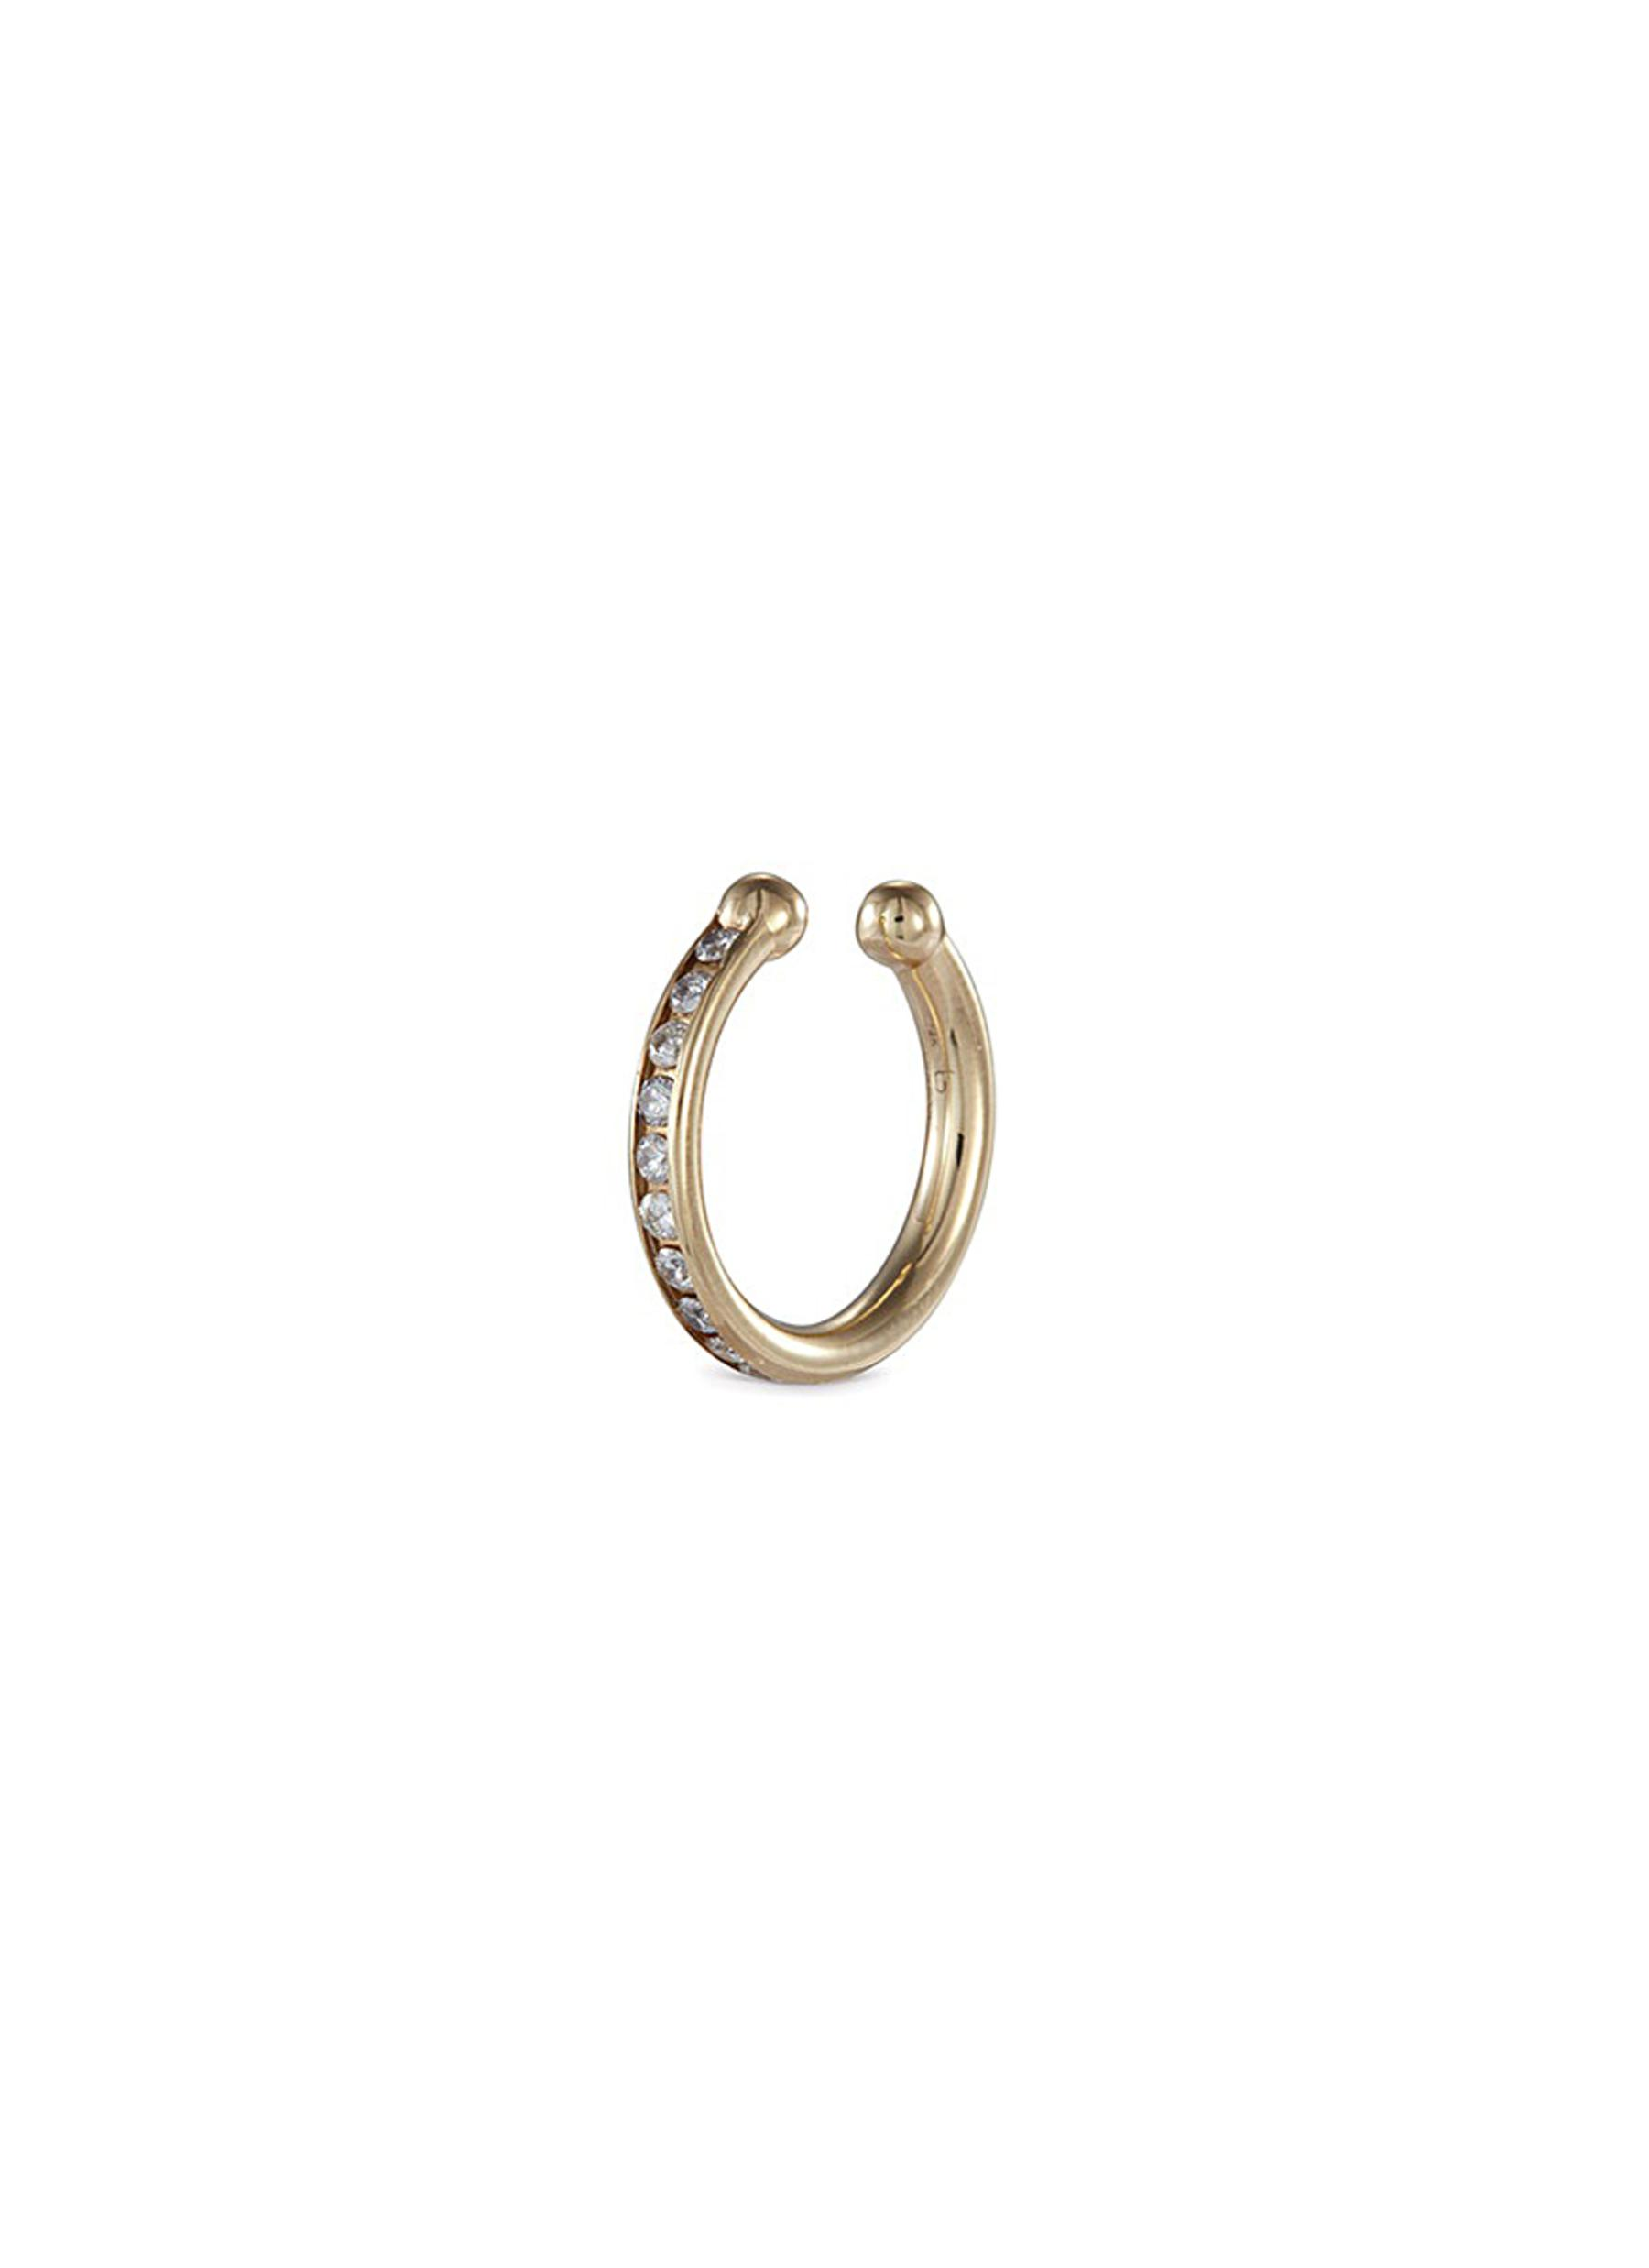 'Channel Orbital Hoop' Diamond 14K Yellow Gold Single Ear Cuff